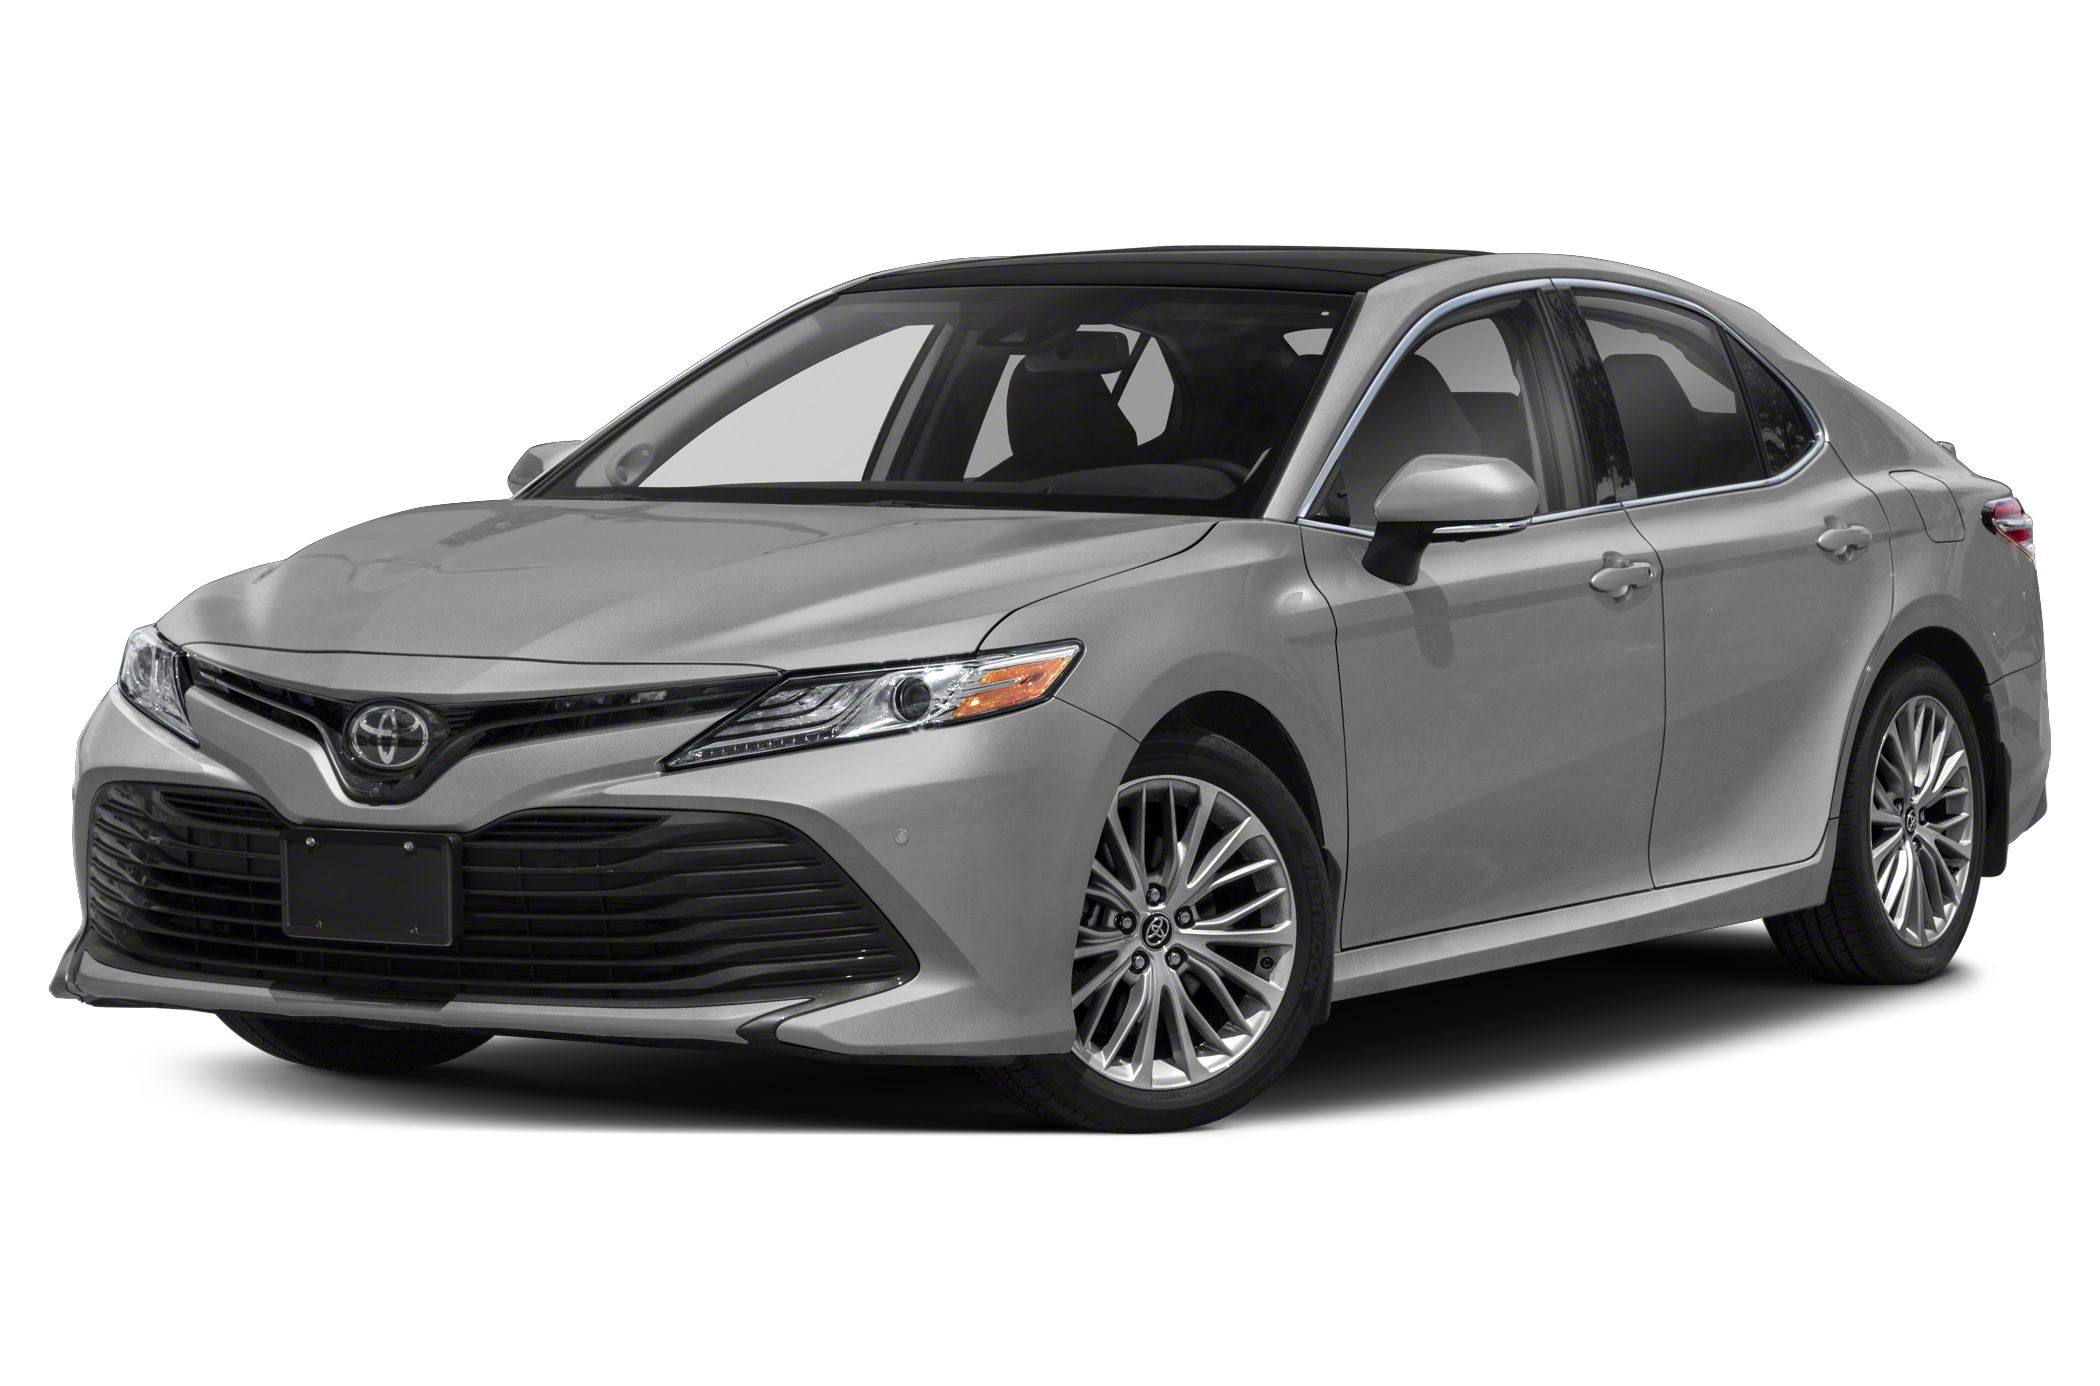 2019 toyota camry xle v6 4dr sedan specs and prices 2019 toyota camry xle v6 4dr sedan specs and prices